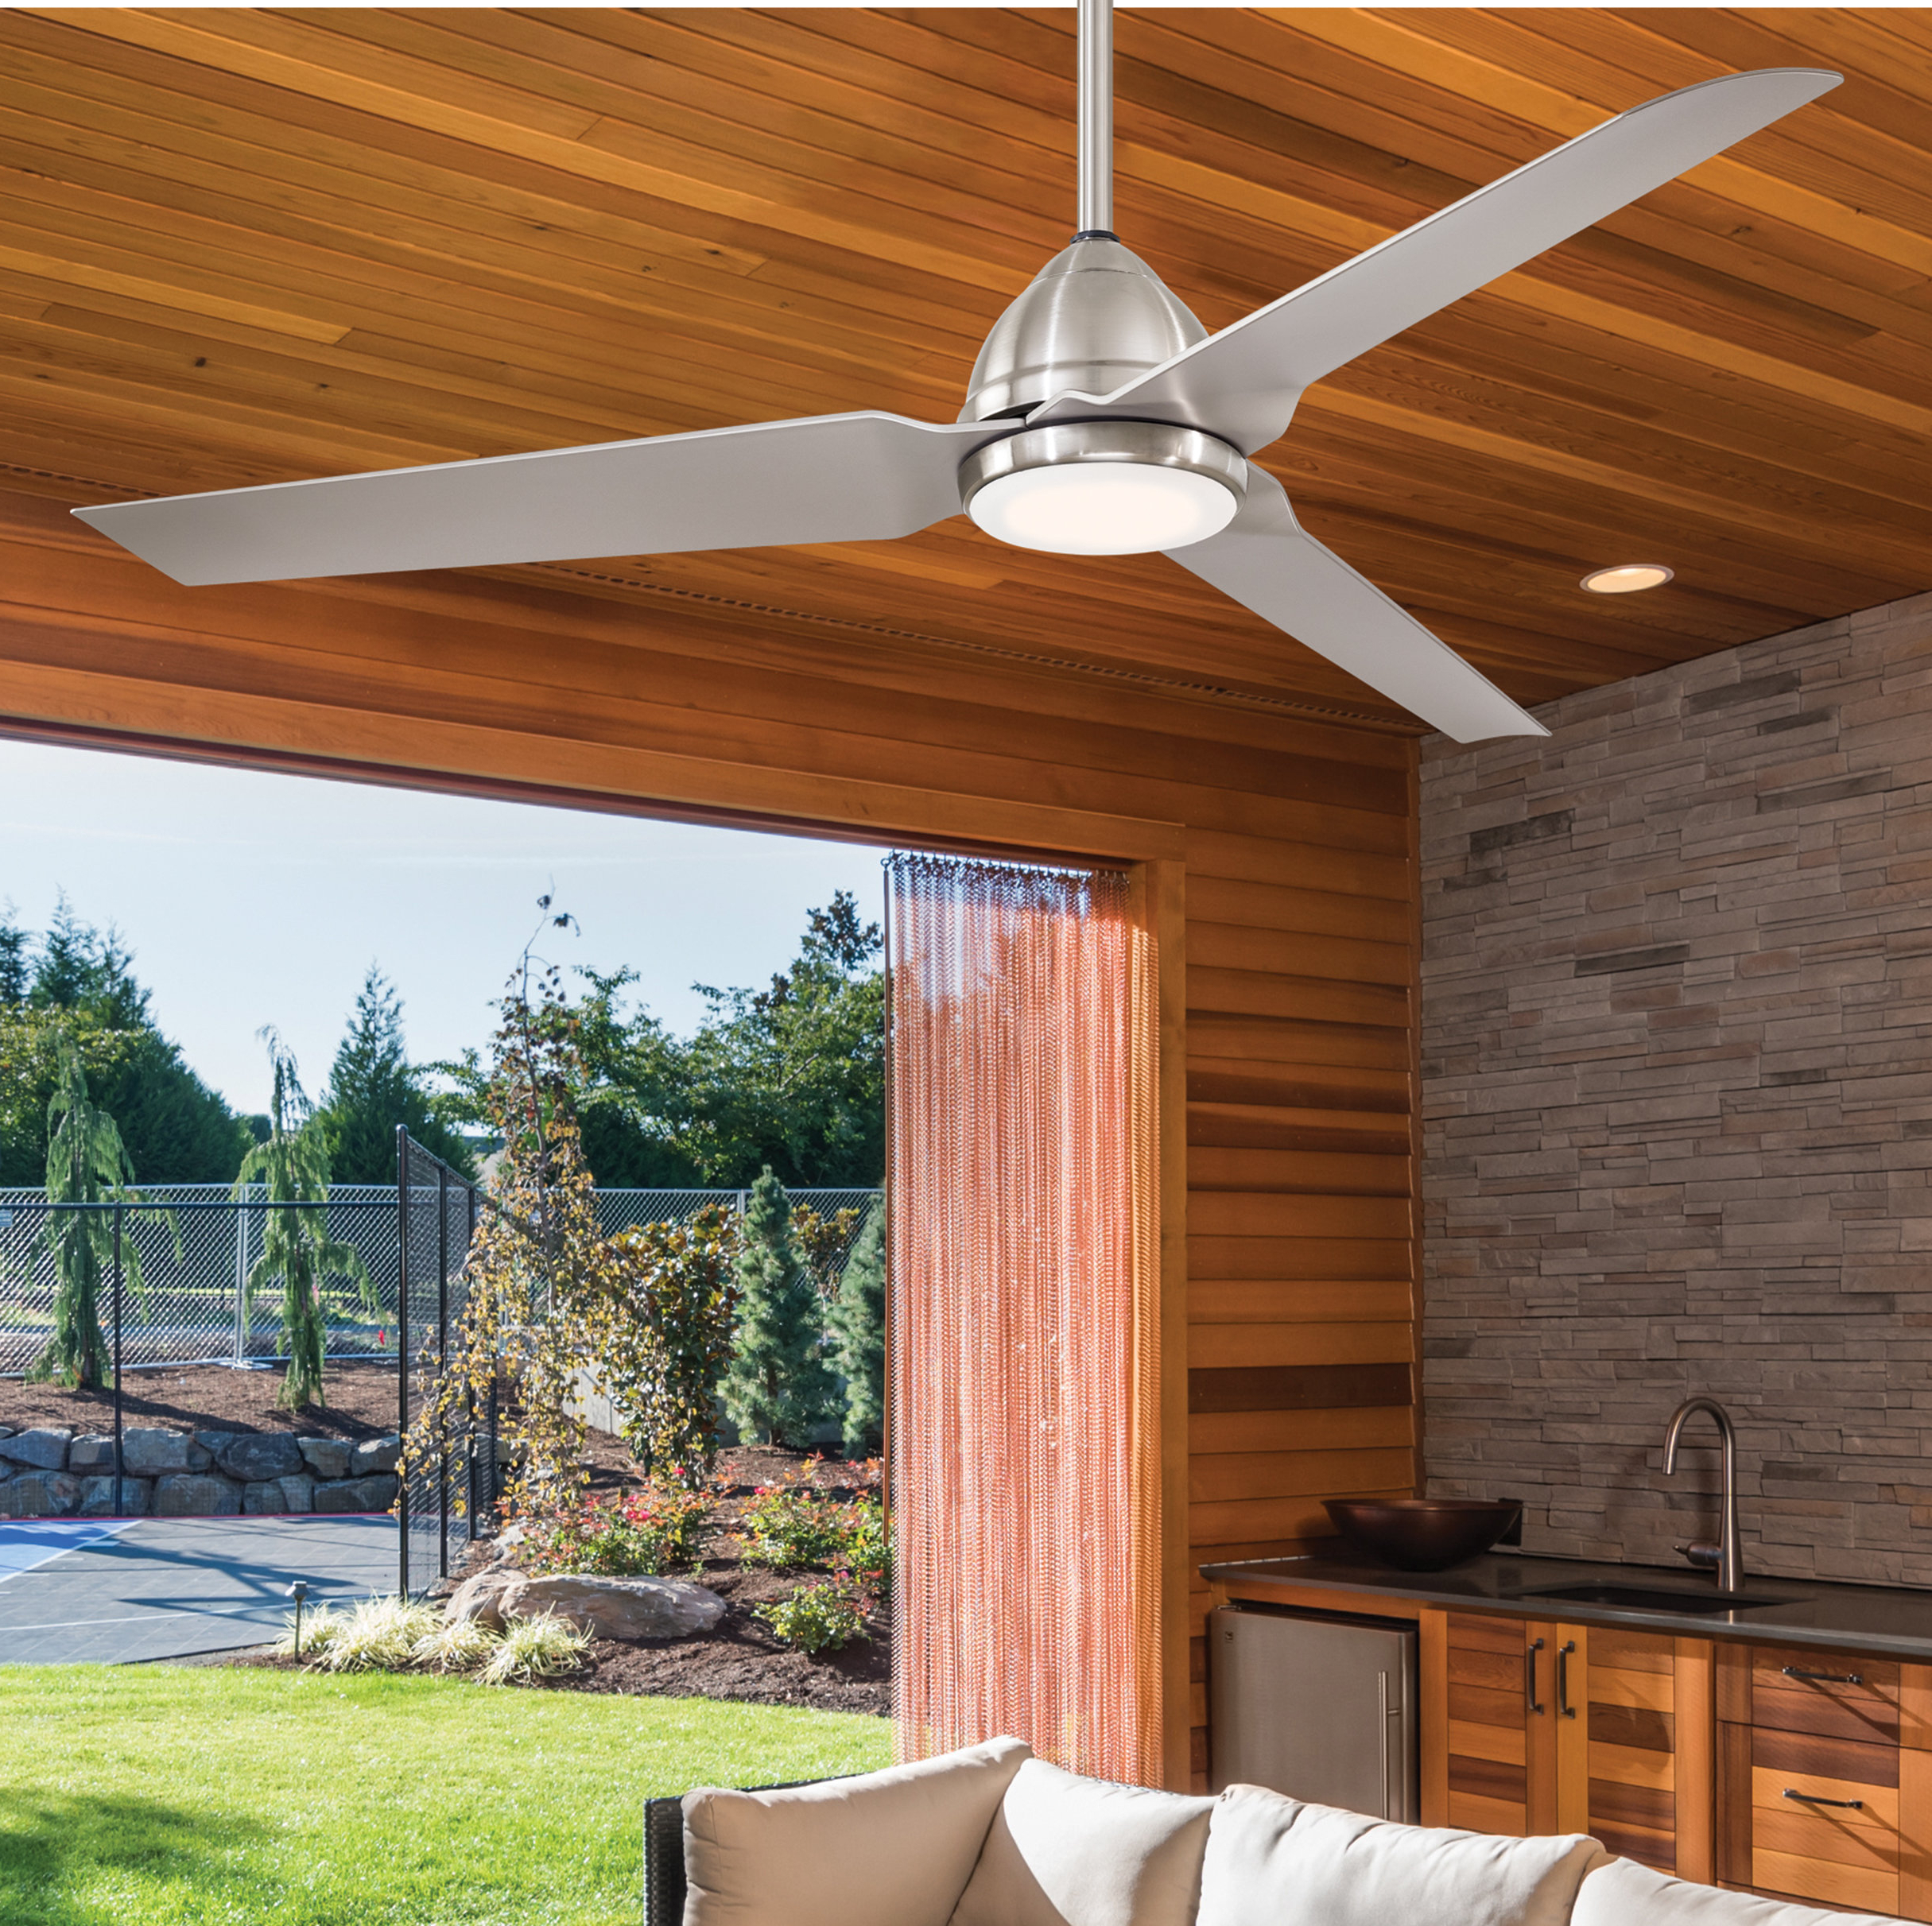 "54"" Java 3 Blade Outdoor Led Ceiling Fan With Remote Intended For Popular Java 3 Blade Outdoor Led Ceiling Fans (View 4 of 20)"